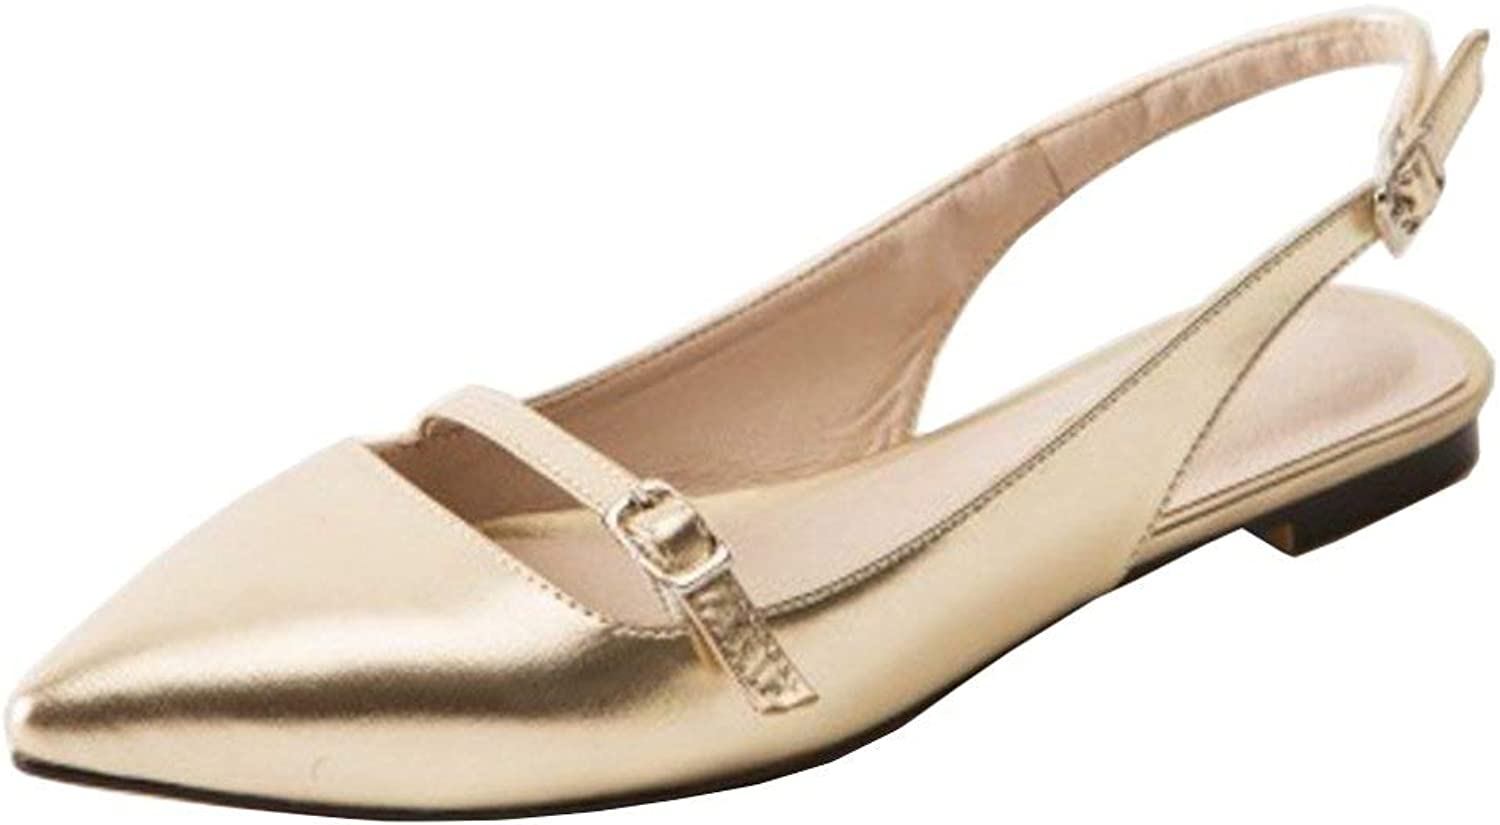 Unm Women's Fashion Flat Slingback Pointed Toe Summer shoes